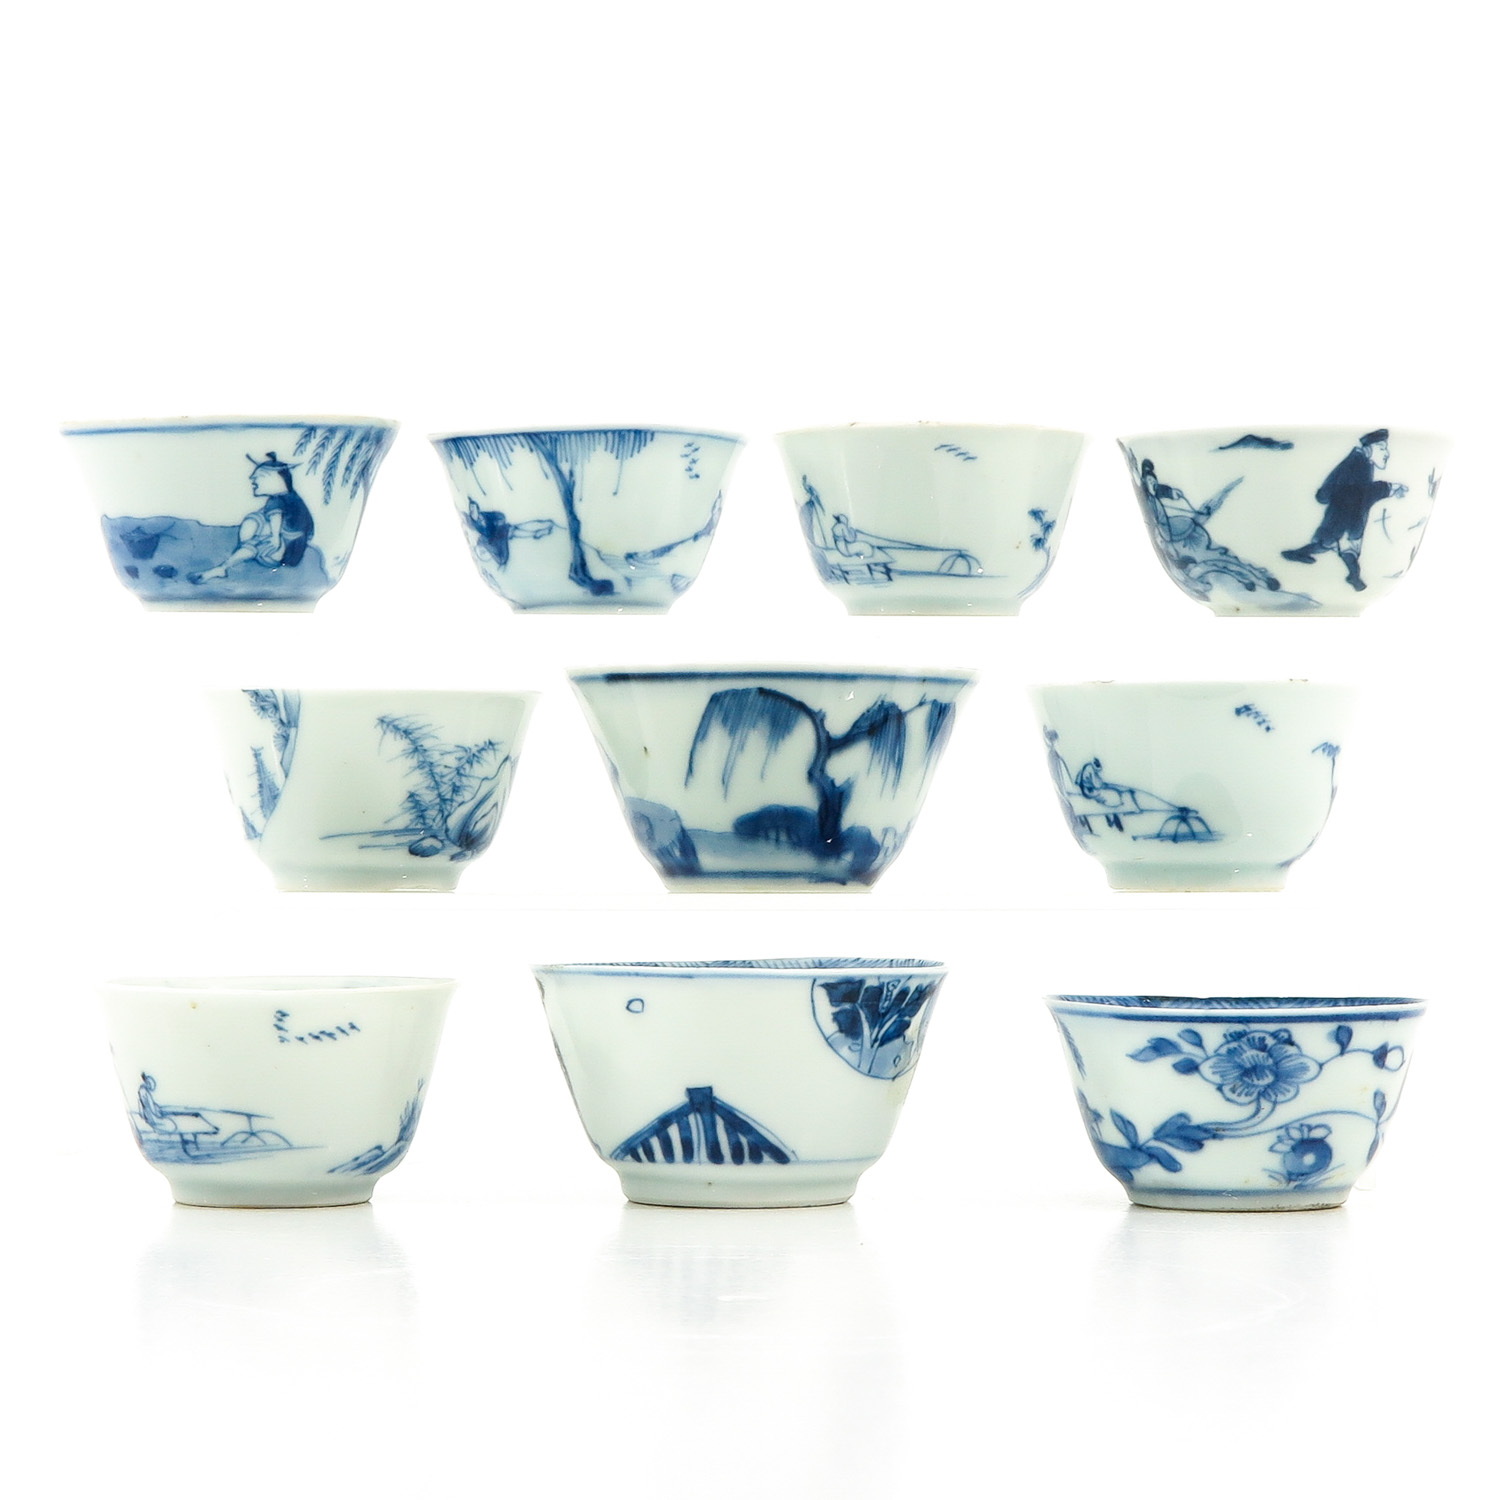 A Collection of 10 Blue and White Cups - Image 2 of 10